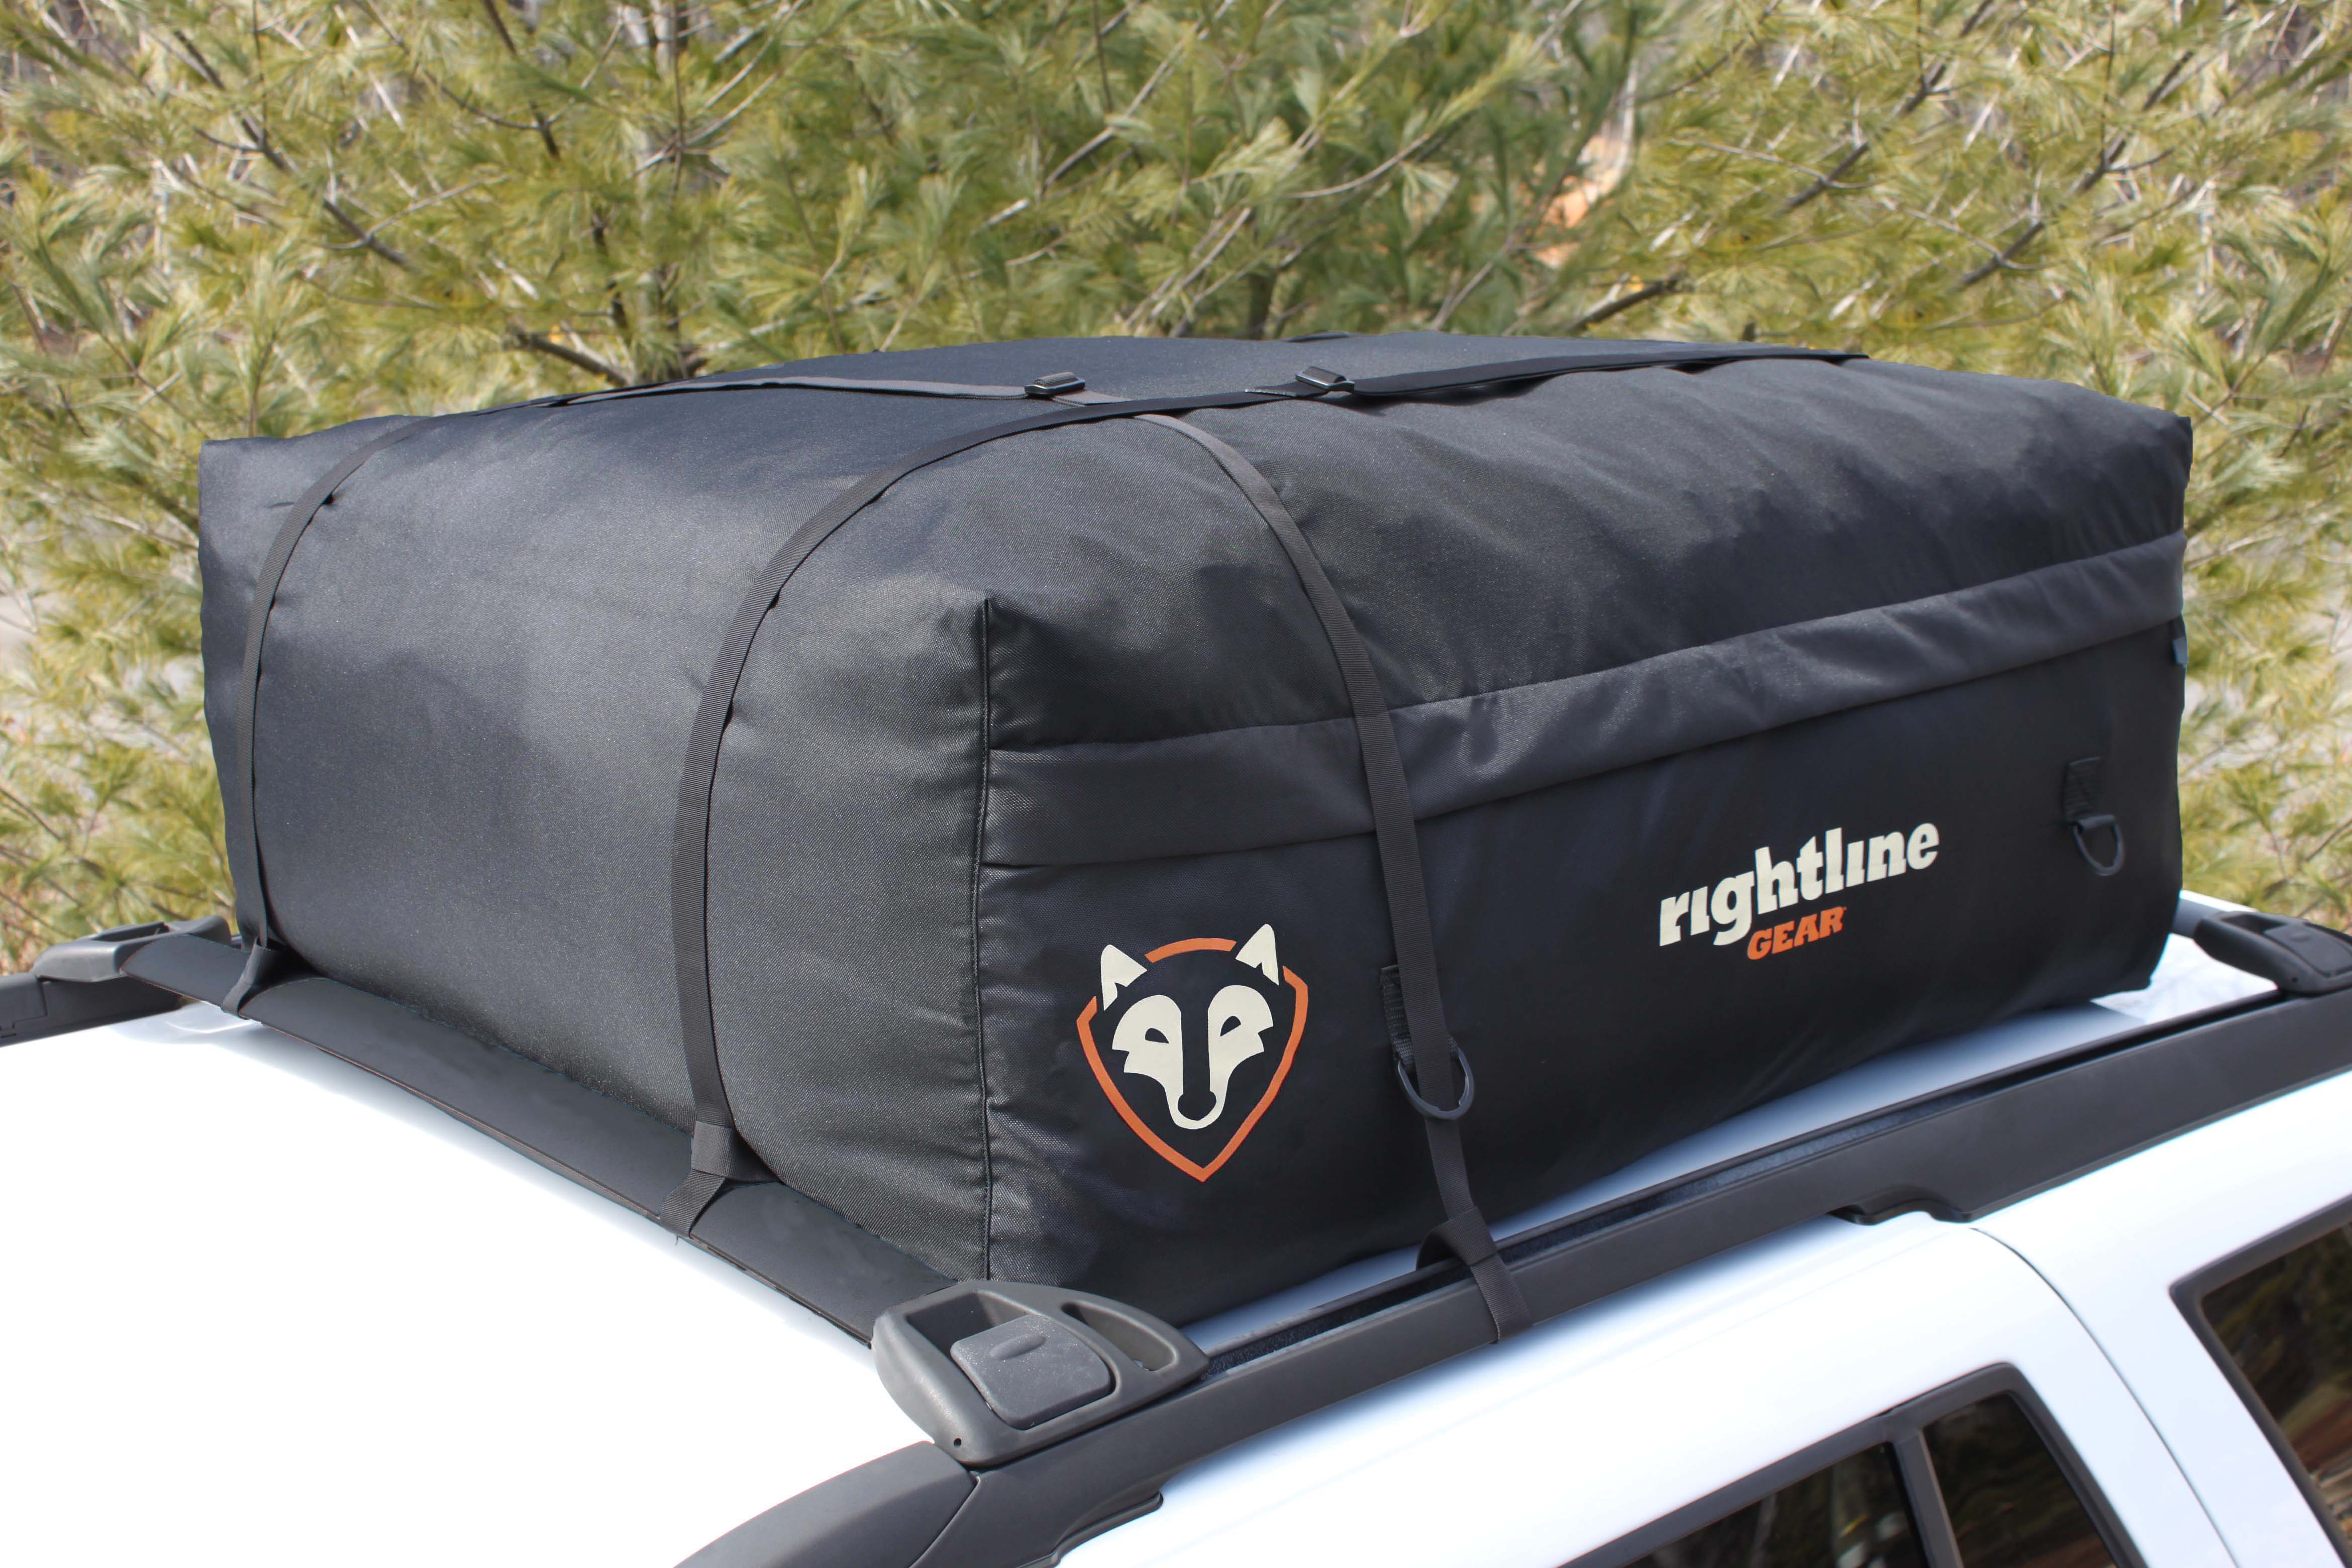 Announcing The New Packright Ace Car Top Carrier